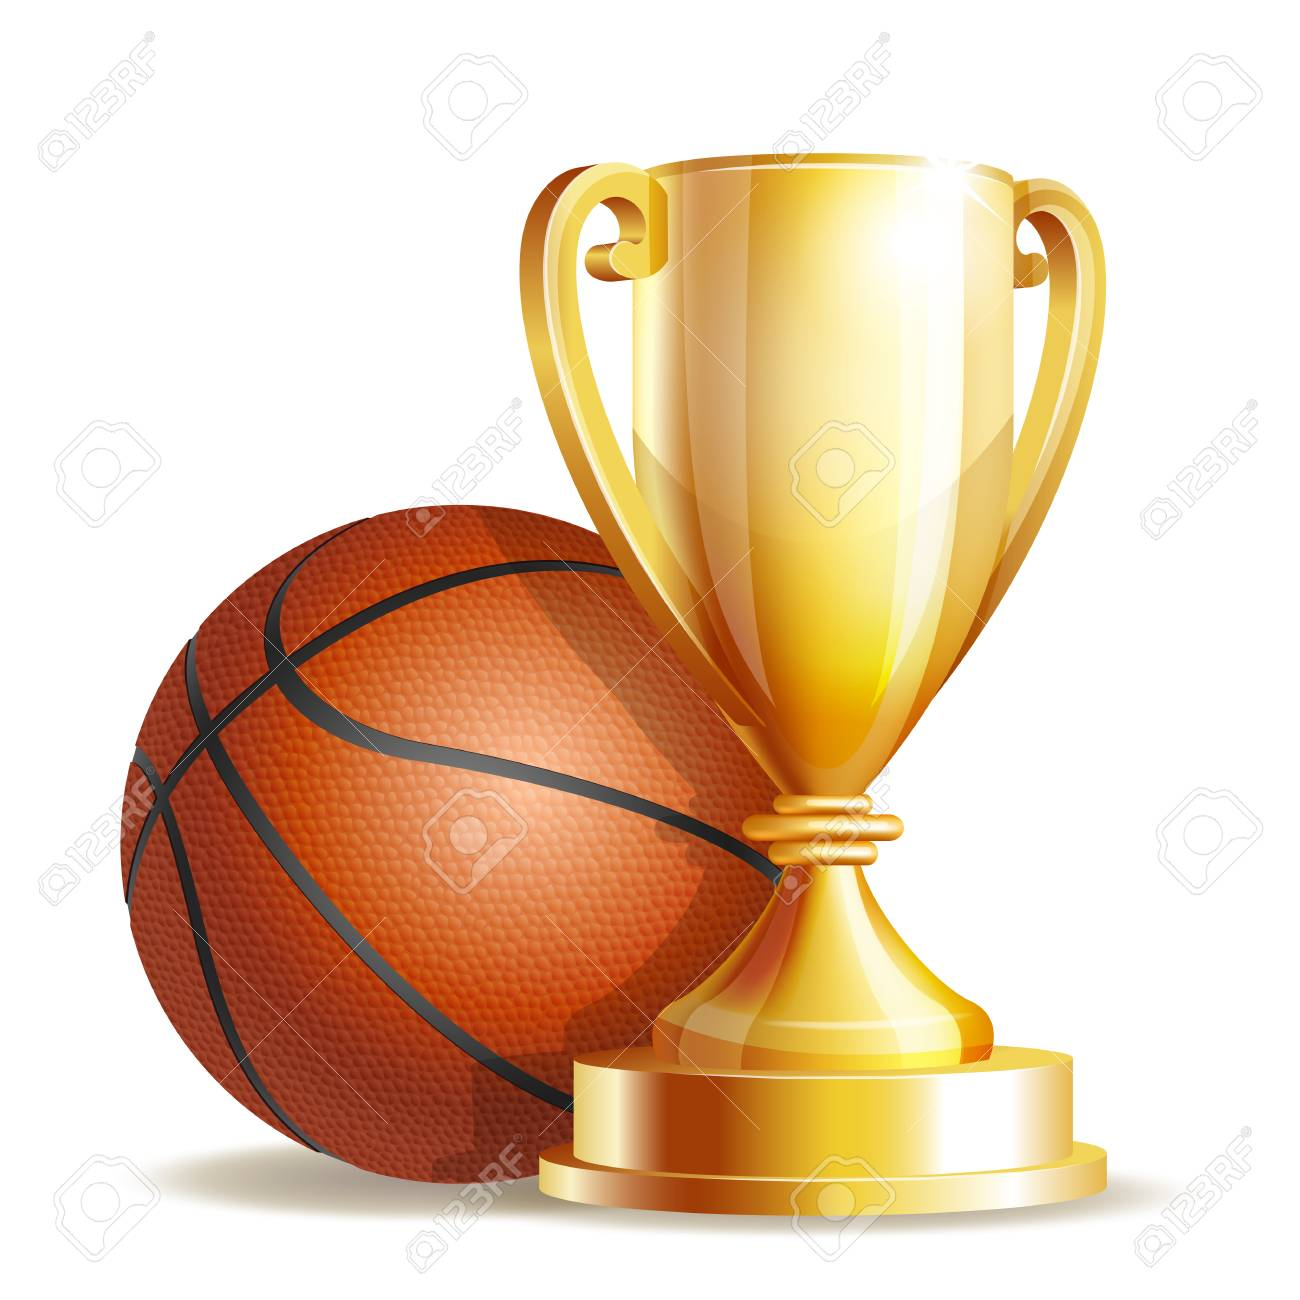 Golden Trophy Cup With A Basketball Ball Stock Photo